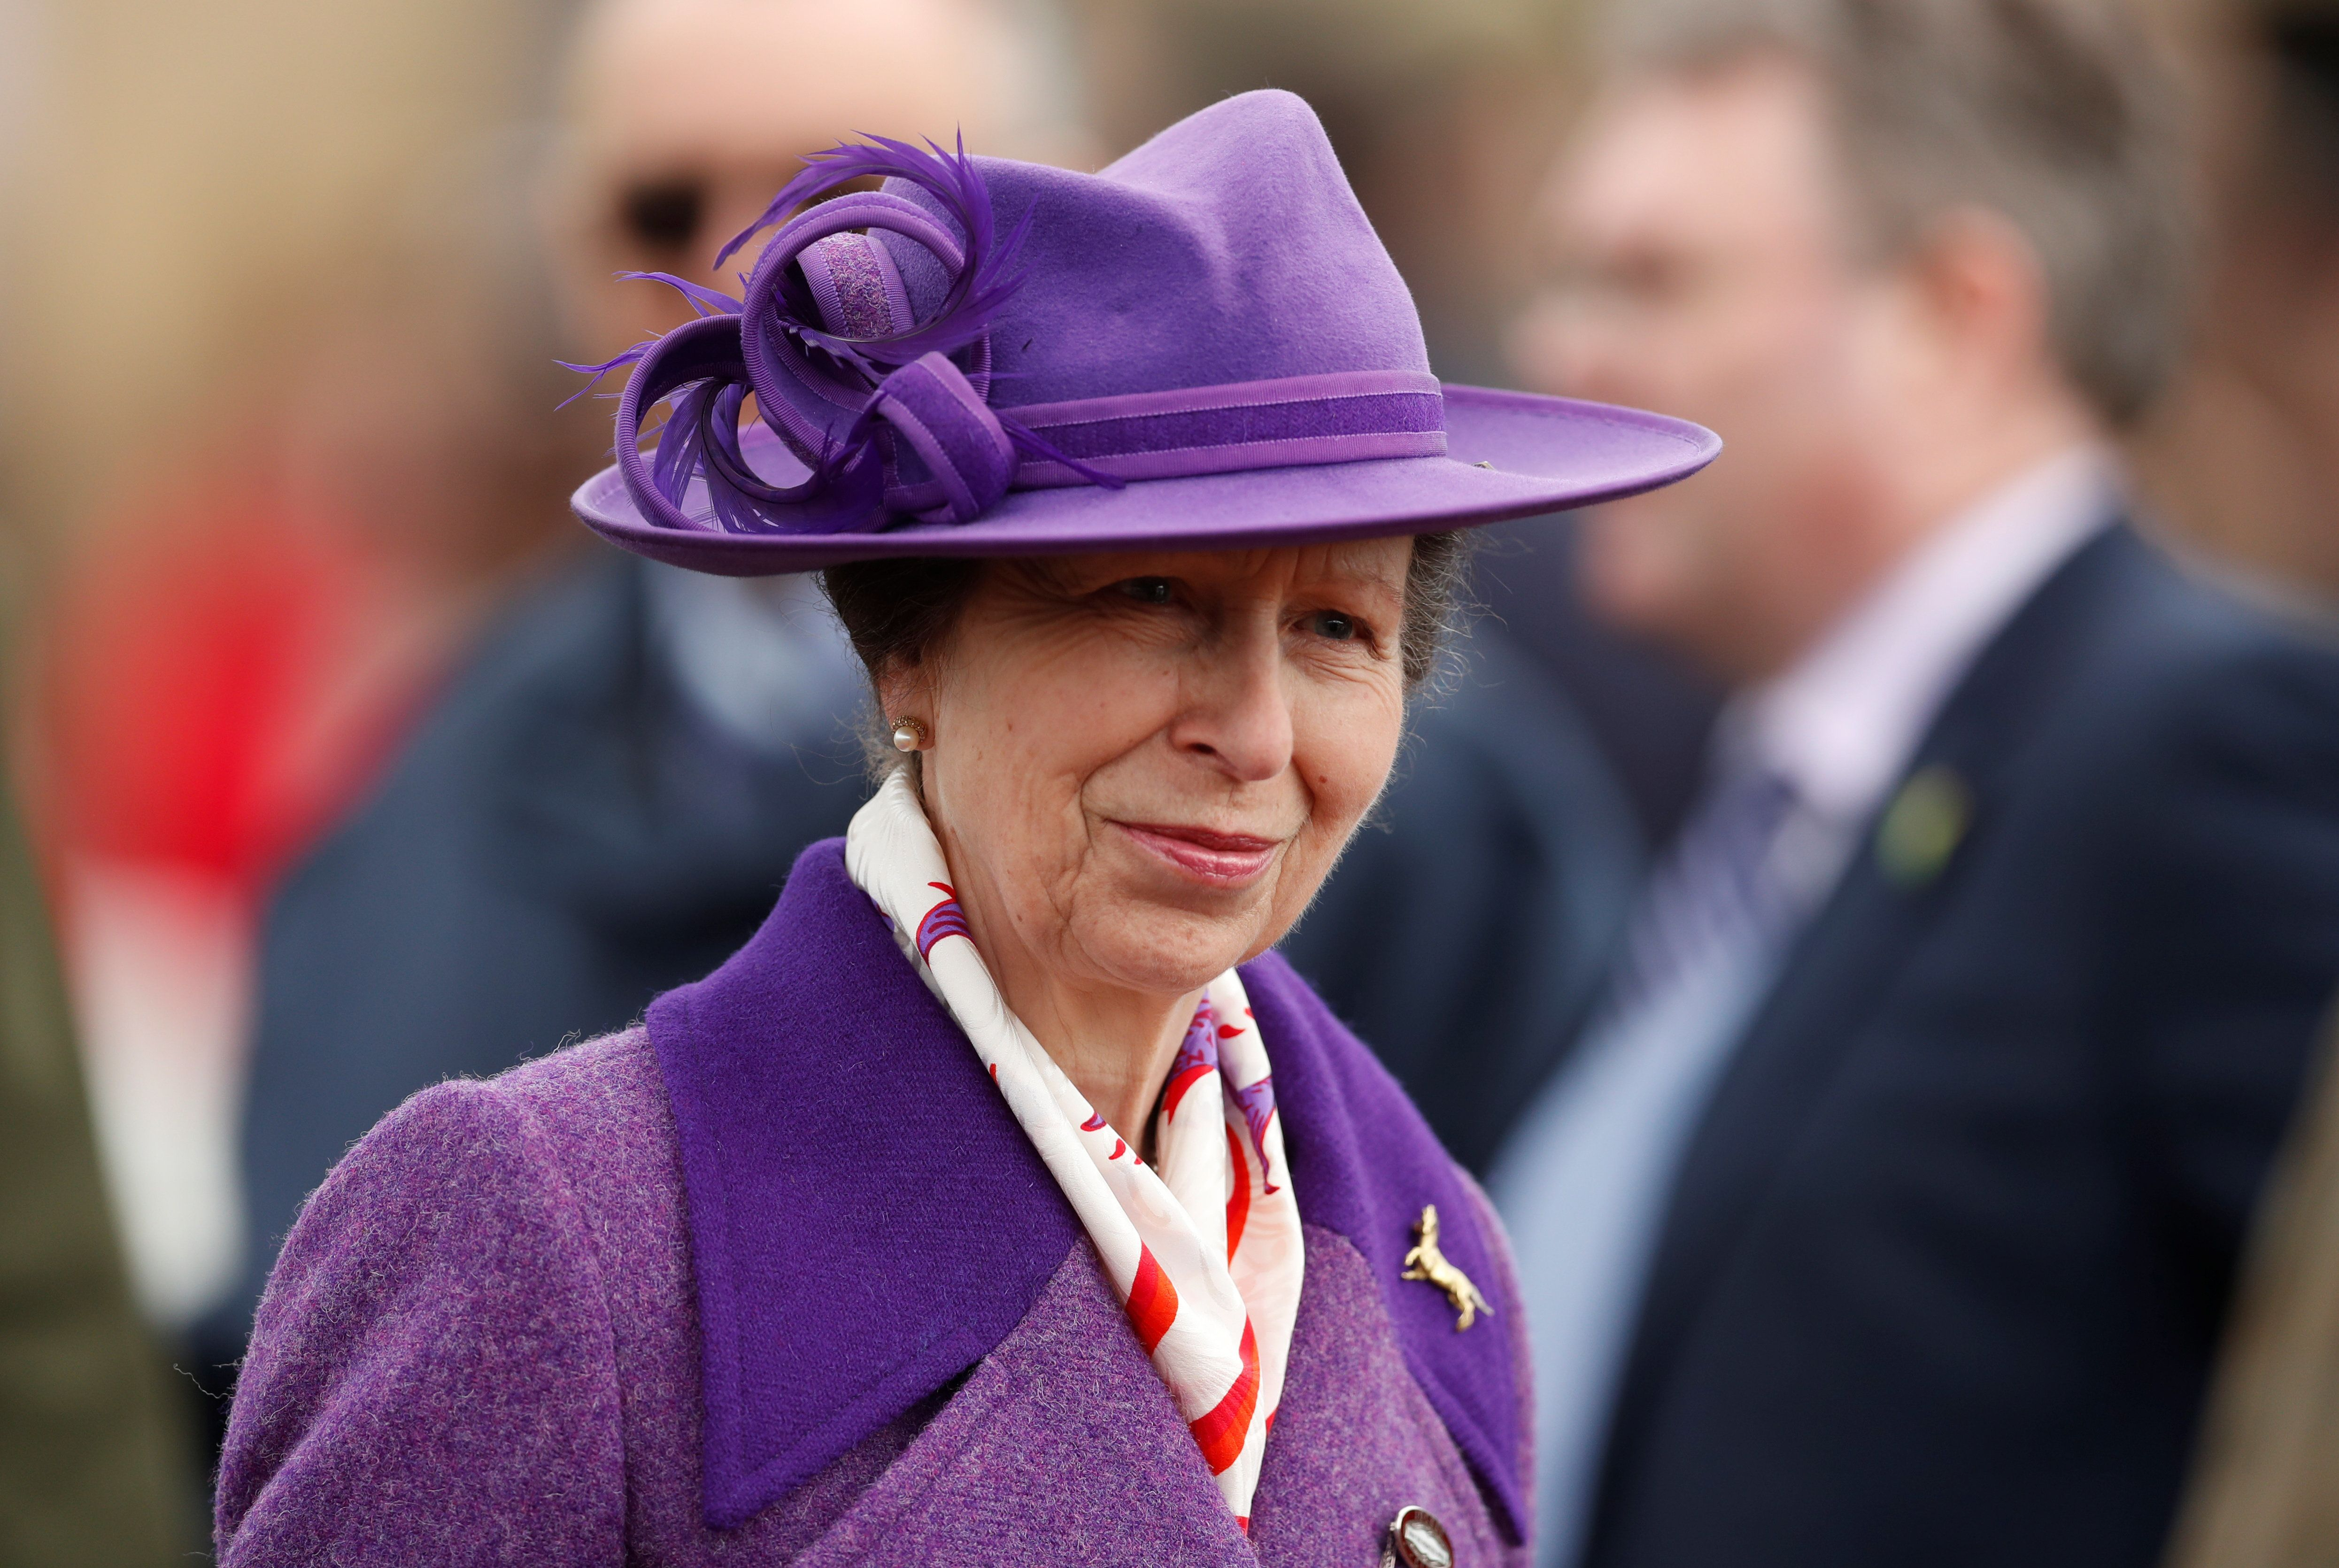 Princess Anna at Cheltenham Racecourse in Britain on March 16.